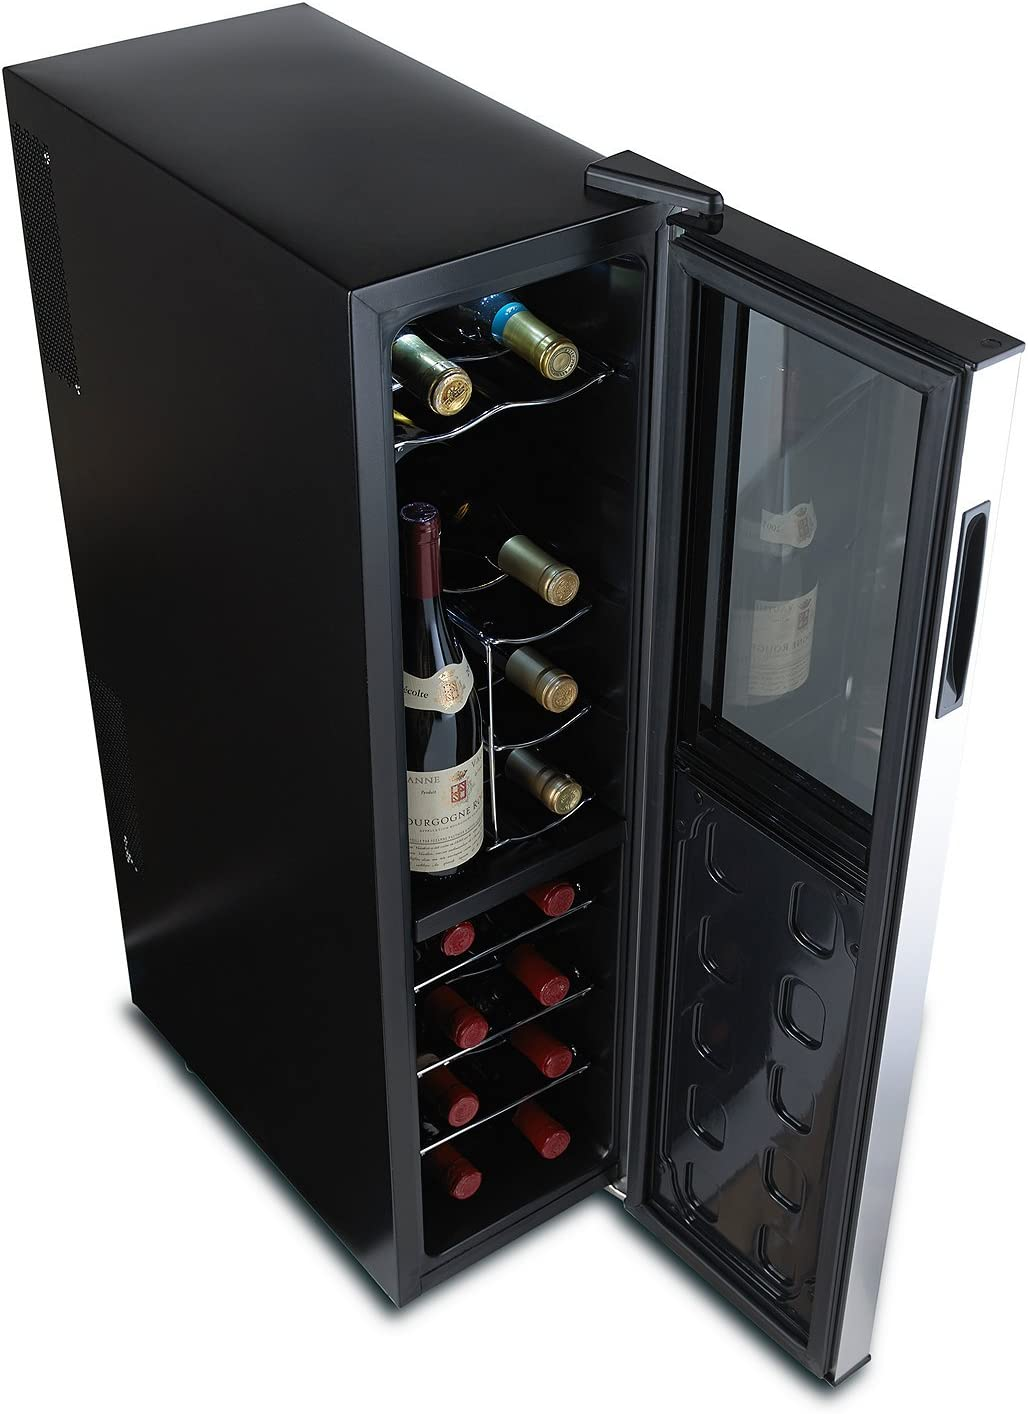 Wine Enthusiast Silent 18 Bottle Wine Refrigerator – Freestanding Slimline Upright Bottle Storage Wine Cooler, Black